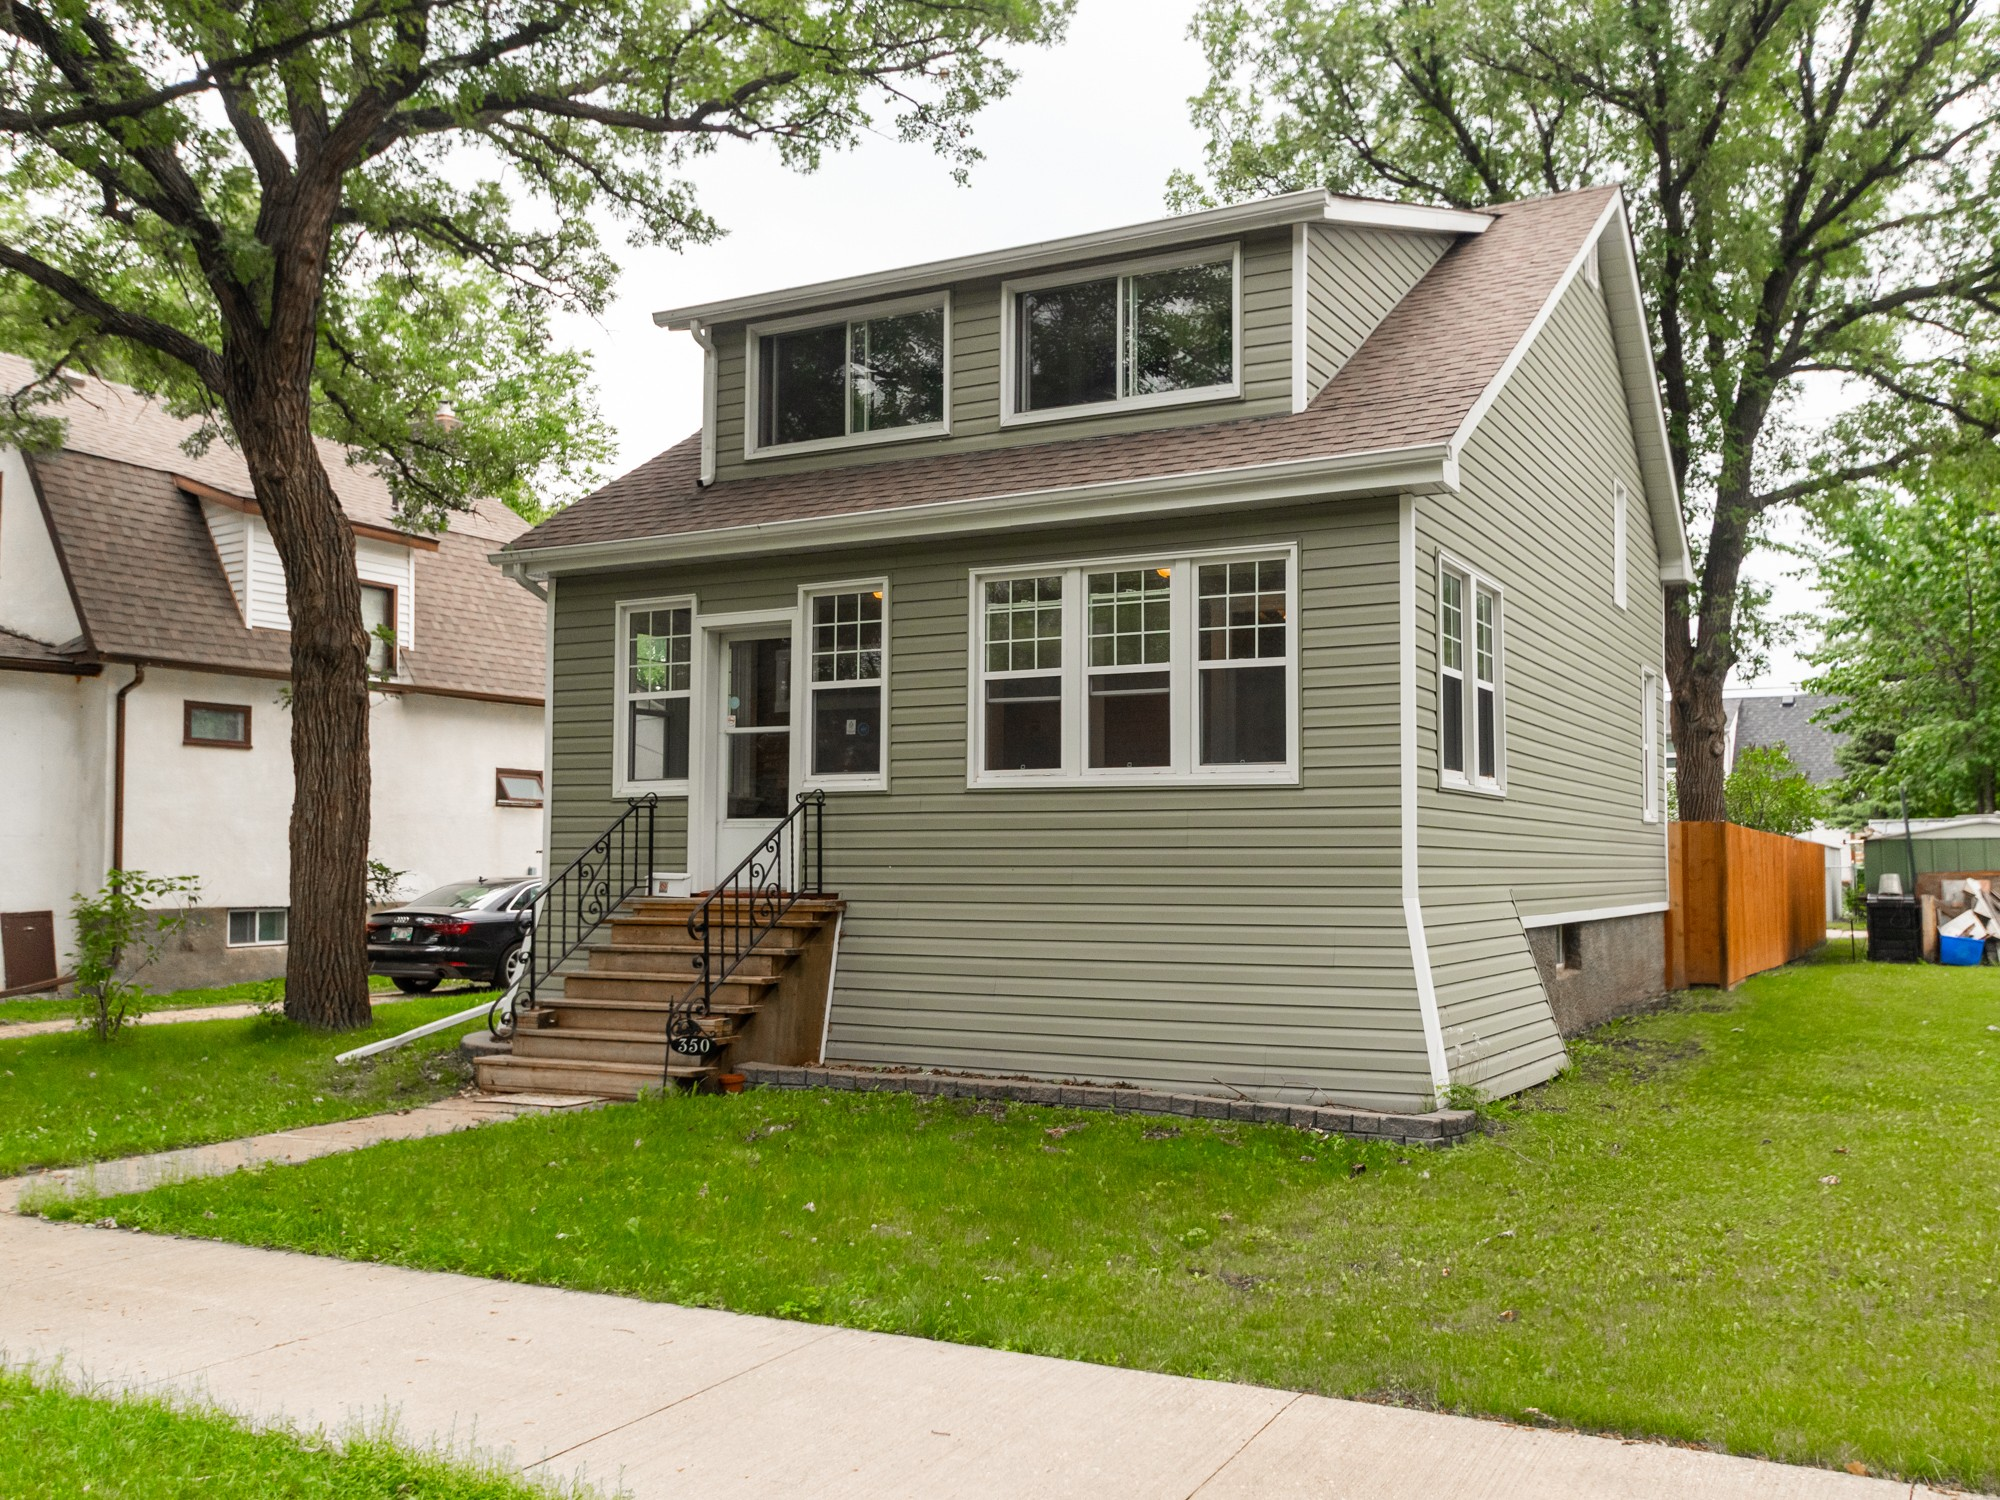 350-woodlawn-ave-for-sale-st-james-winnipeg-bobby-wall-realtor